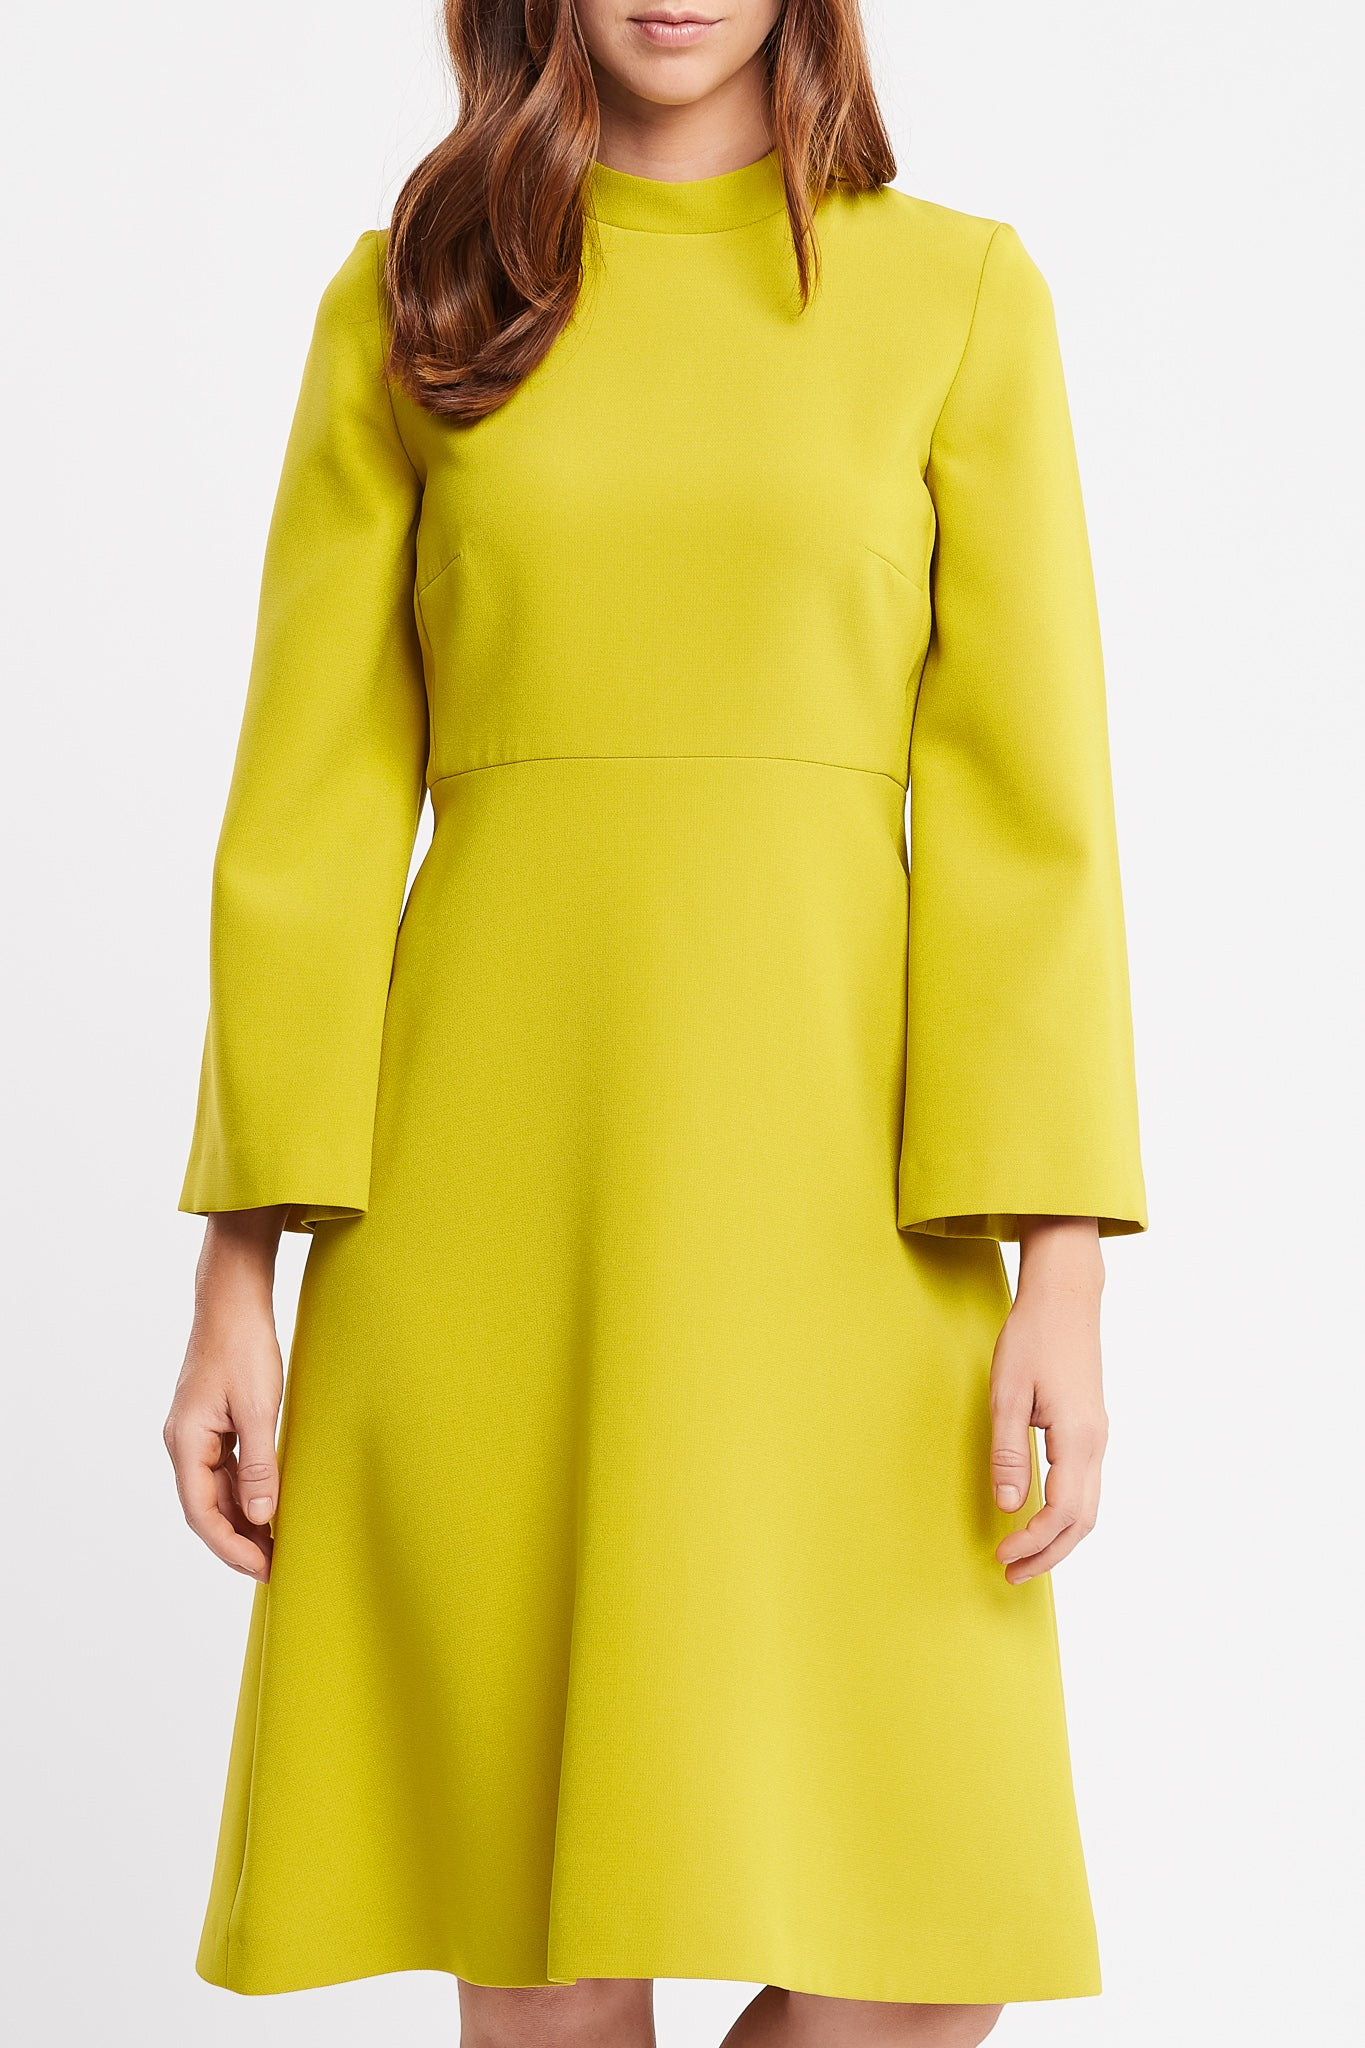 Vamilla Long Sleeve Flared Skirt Yellow Work and Cocktail Dress